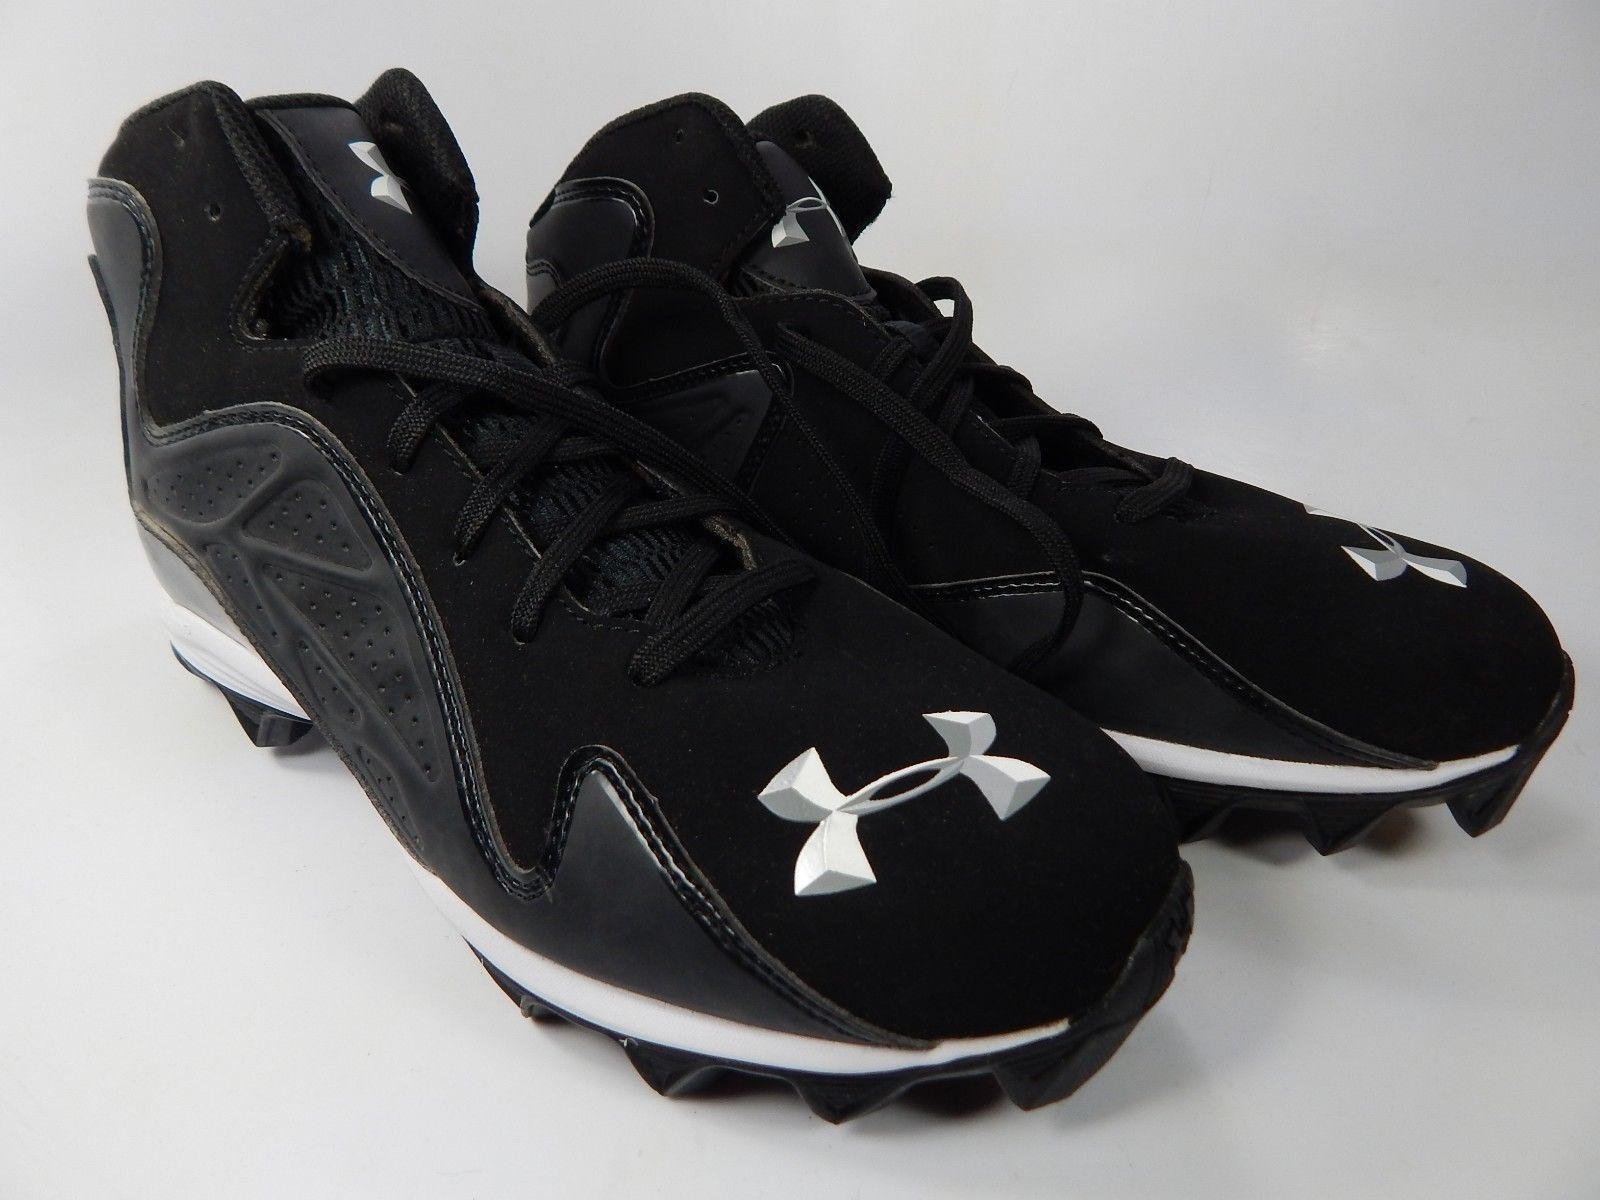 Under Armour Renegade Mid Top Size 8.5 M EU 42 Men's Football Cleats 1242241-001